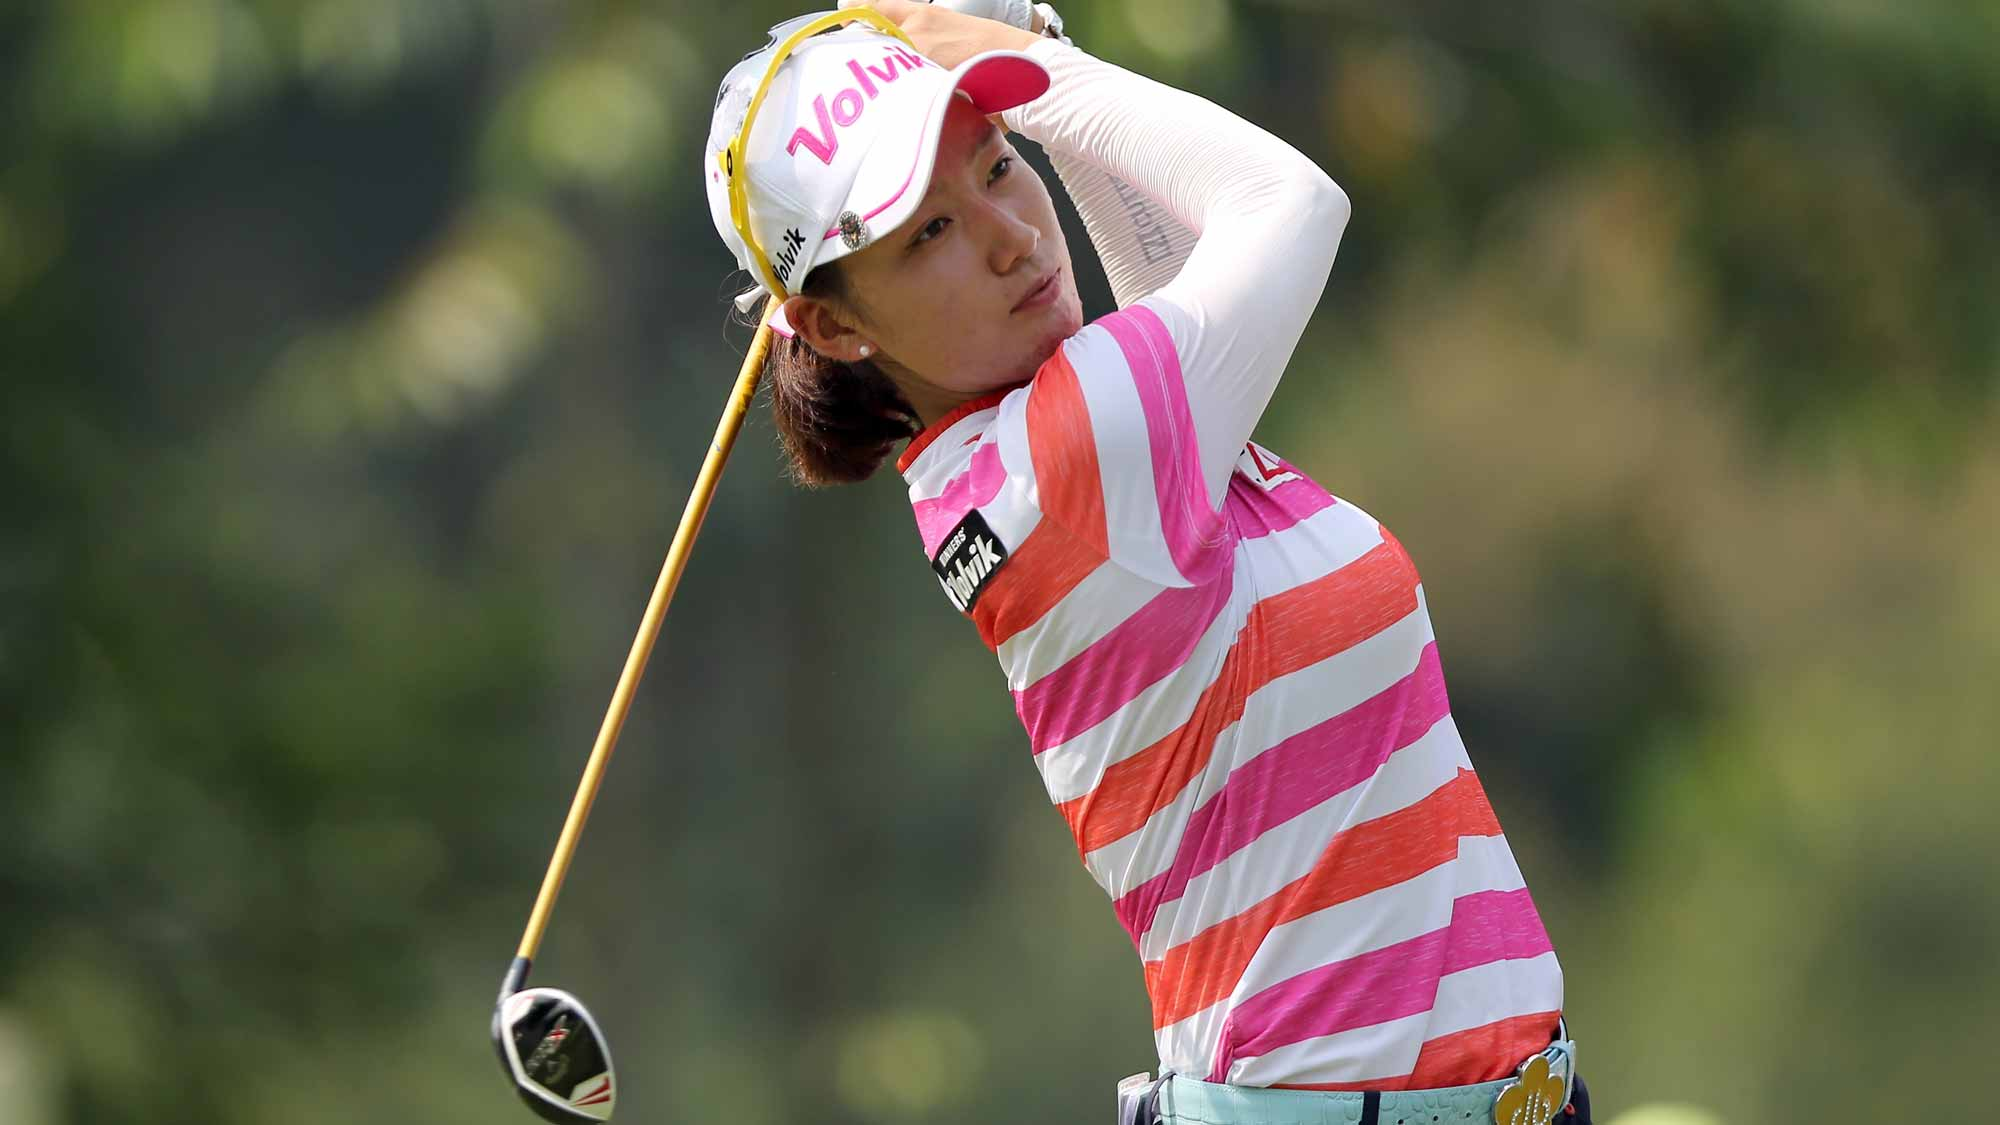 Chella Choi of South Korea plays her tee shot on the 4th hole during round two of the Sime Darby LPGA Tour at Kuala Lumpur Golf & Country Club